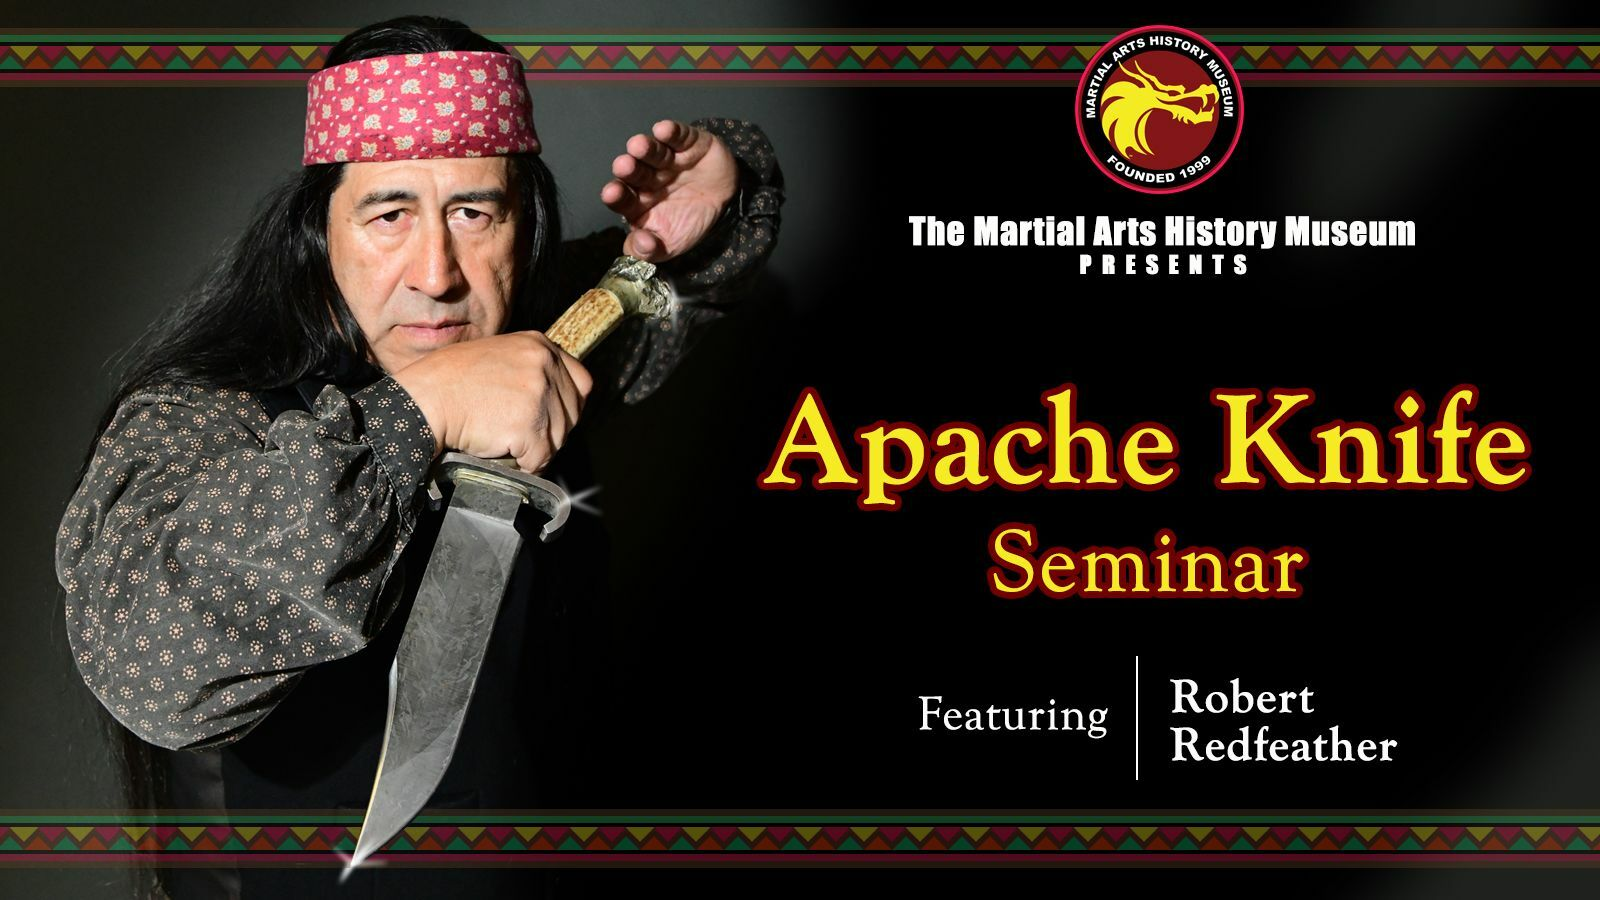 Apache Knife Seminar with Robert Redfeather